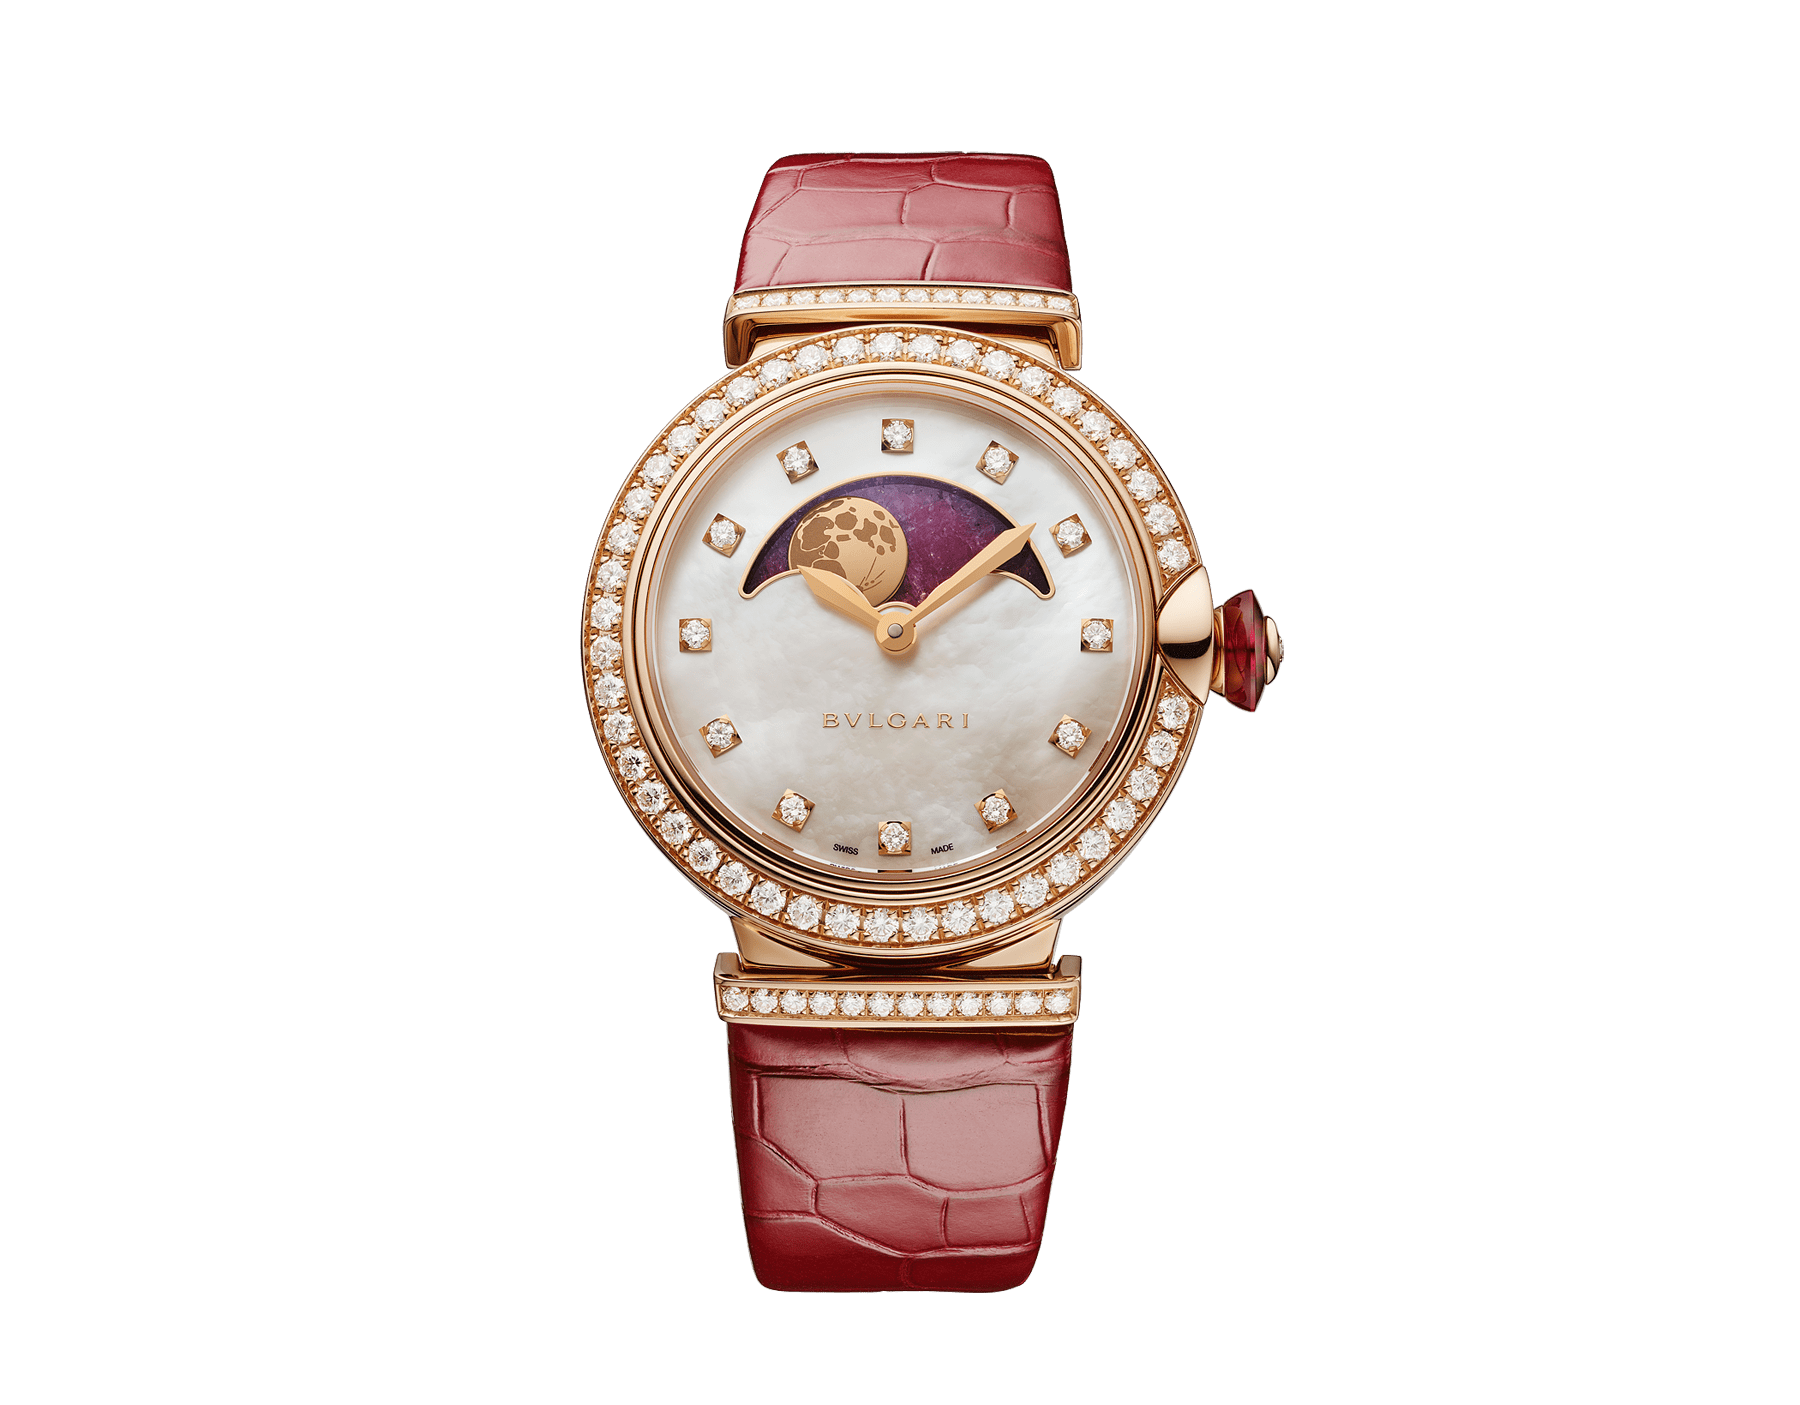 LVCEA Moon phase watch with 18 kt rose gold case set with diamonds, mother-of-pearl and heart of ruby dial, red alligator bracelet. 102686 image 1